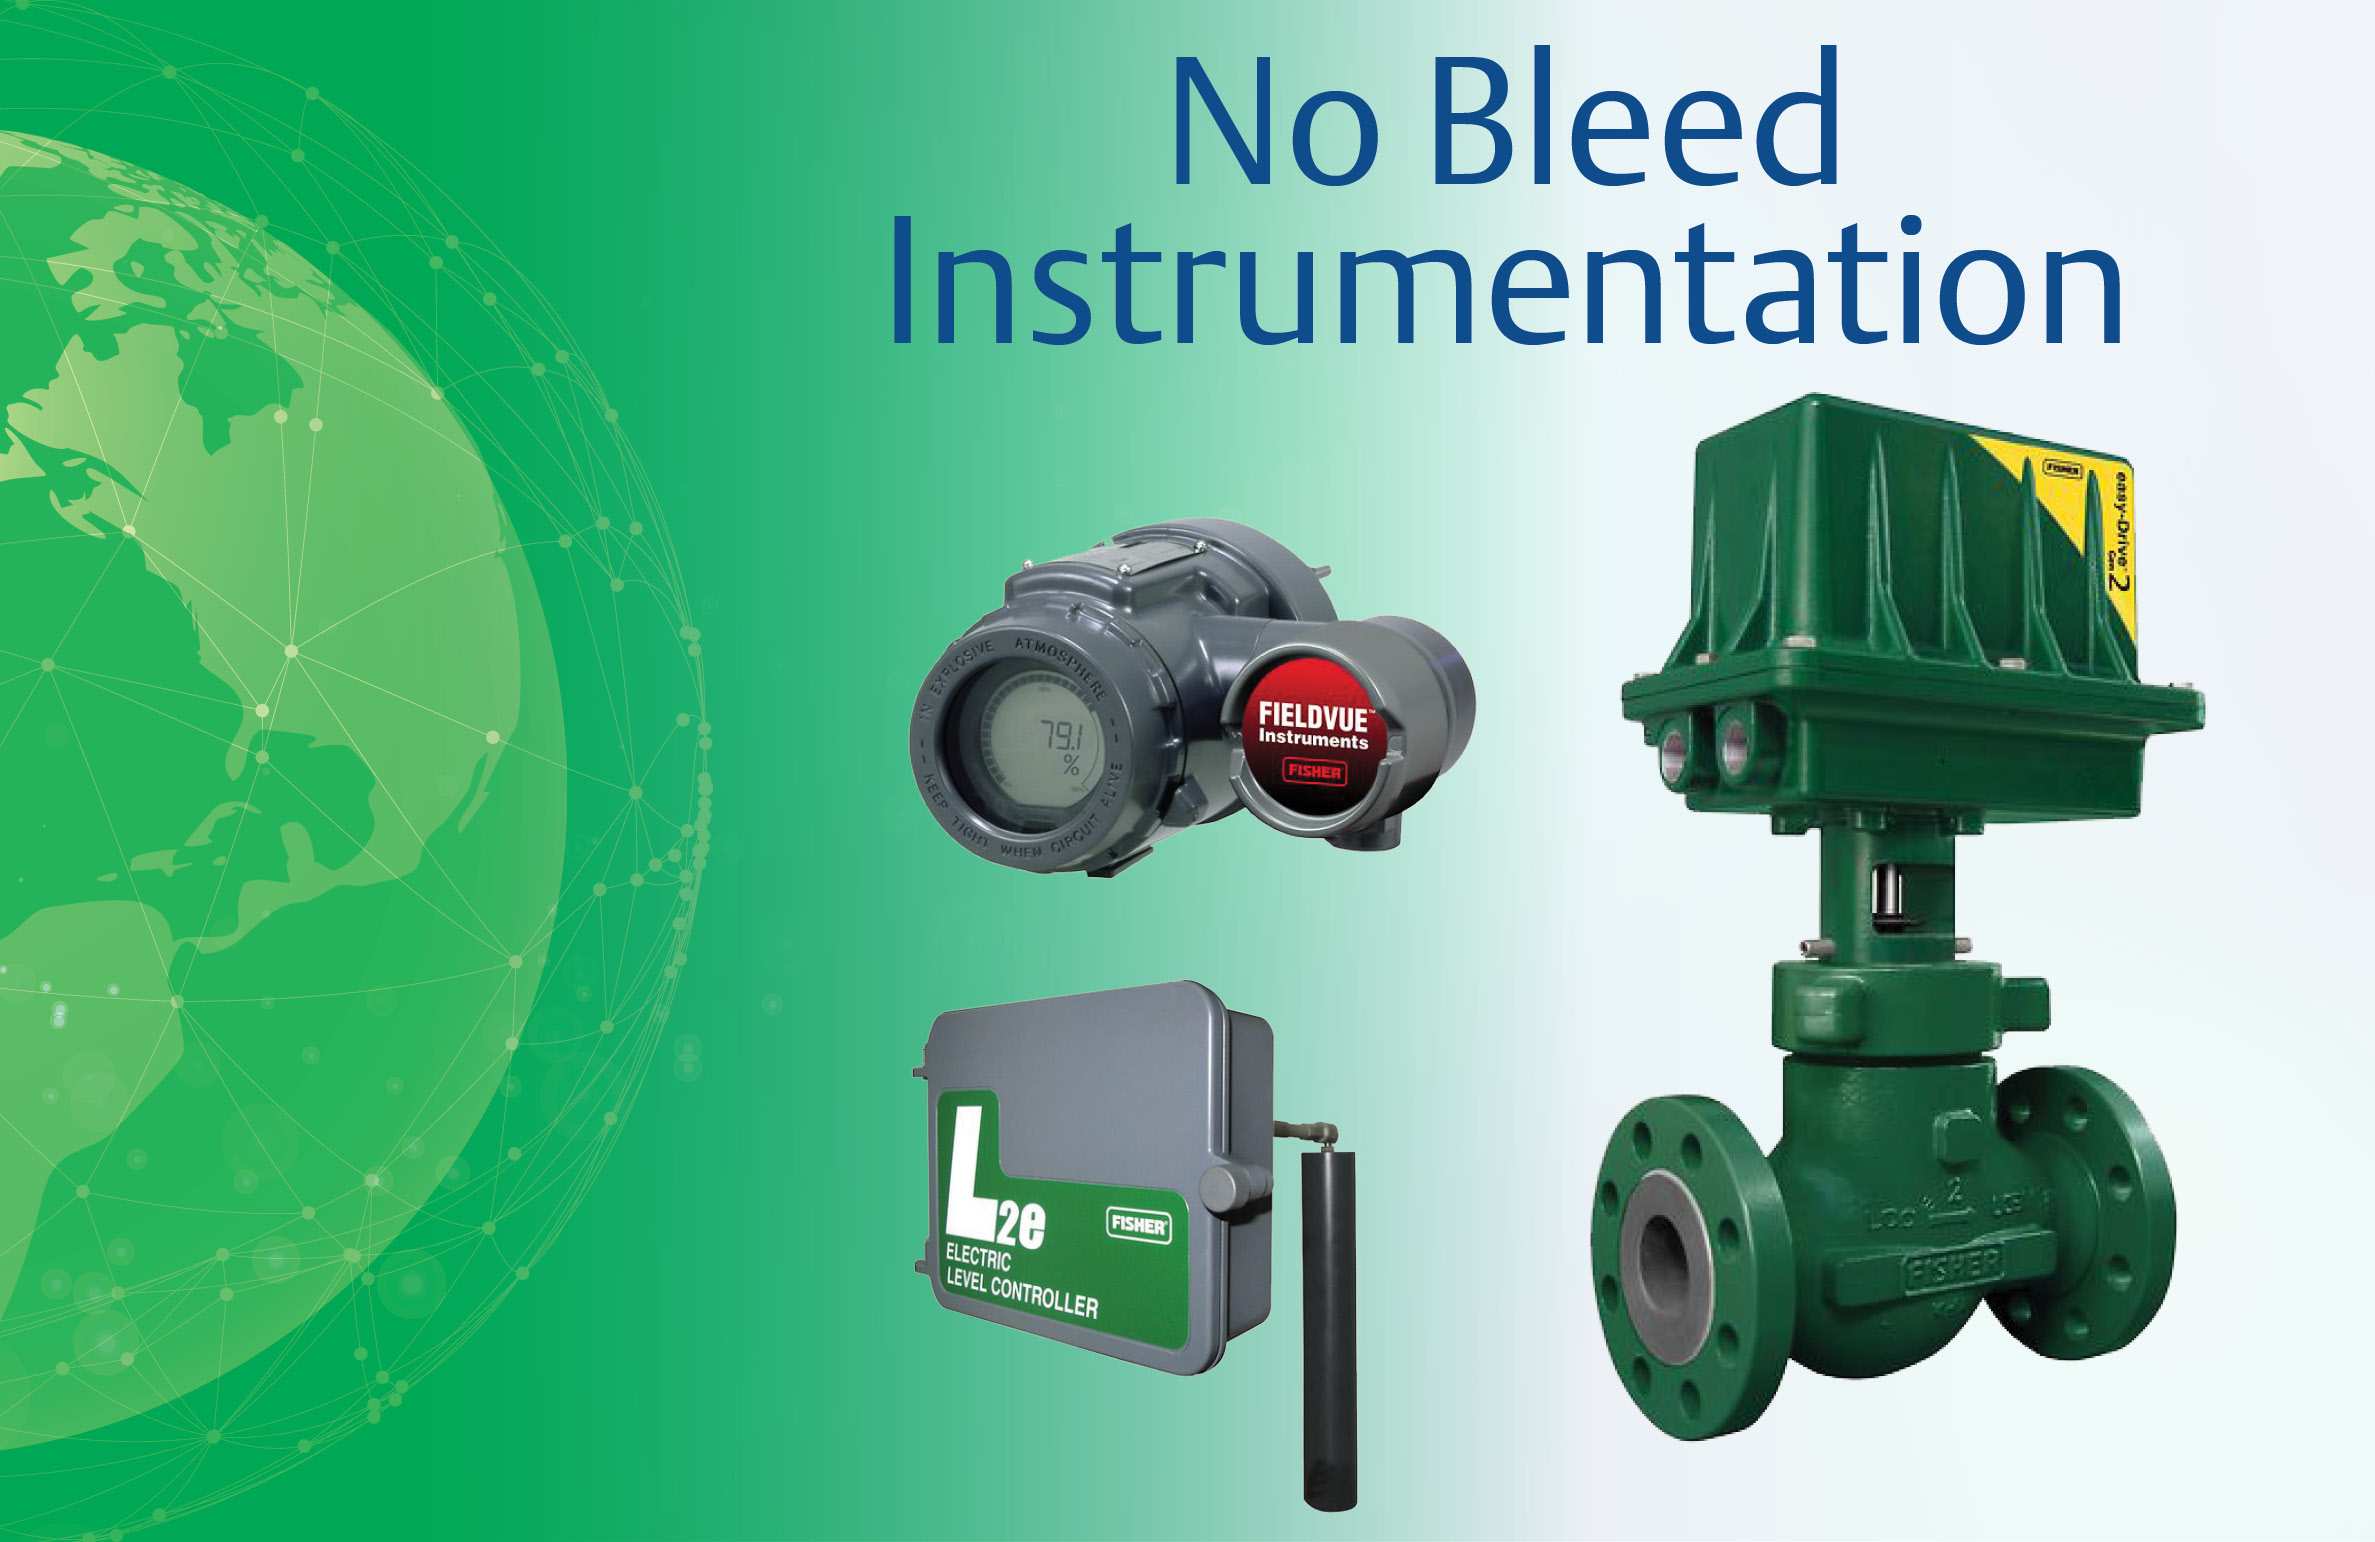 Move Past the Limitations of Pneumatic Devices with No Bleed Instrumentation